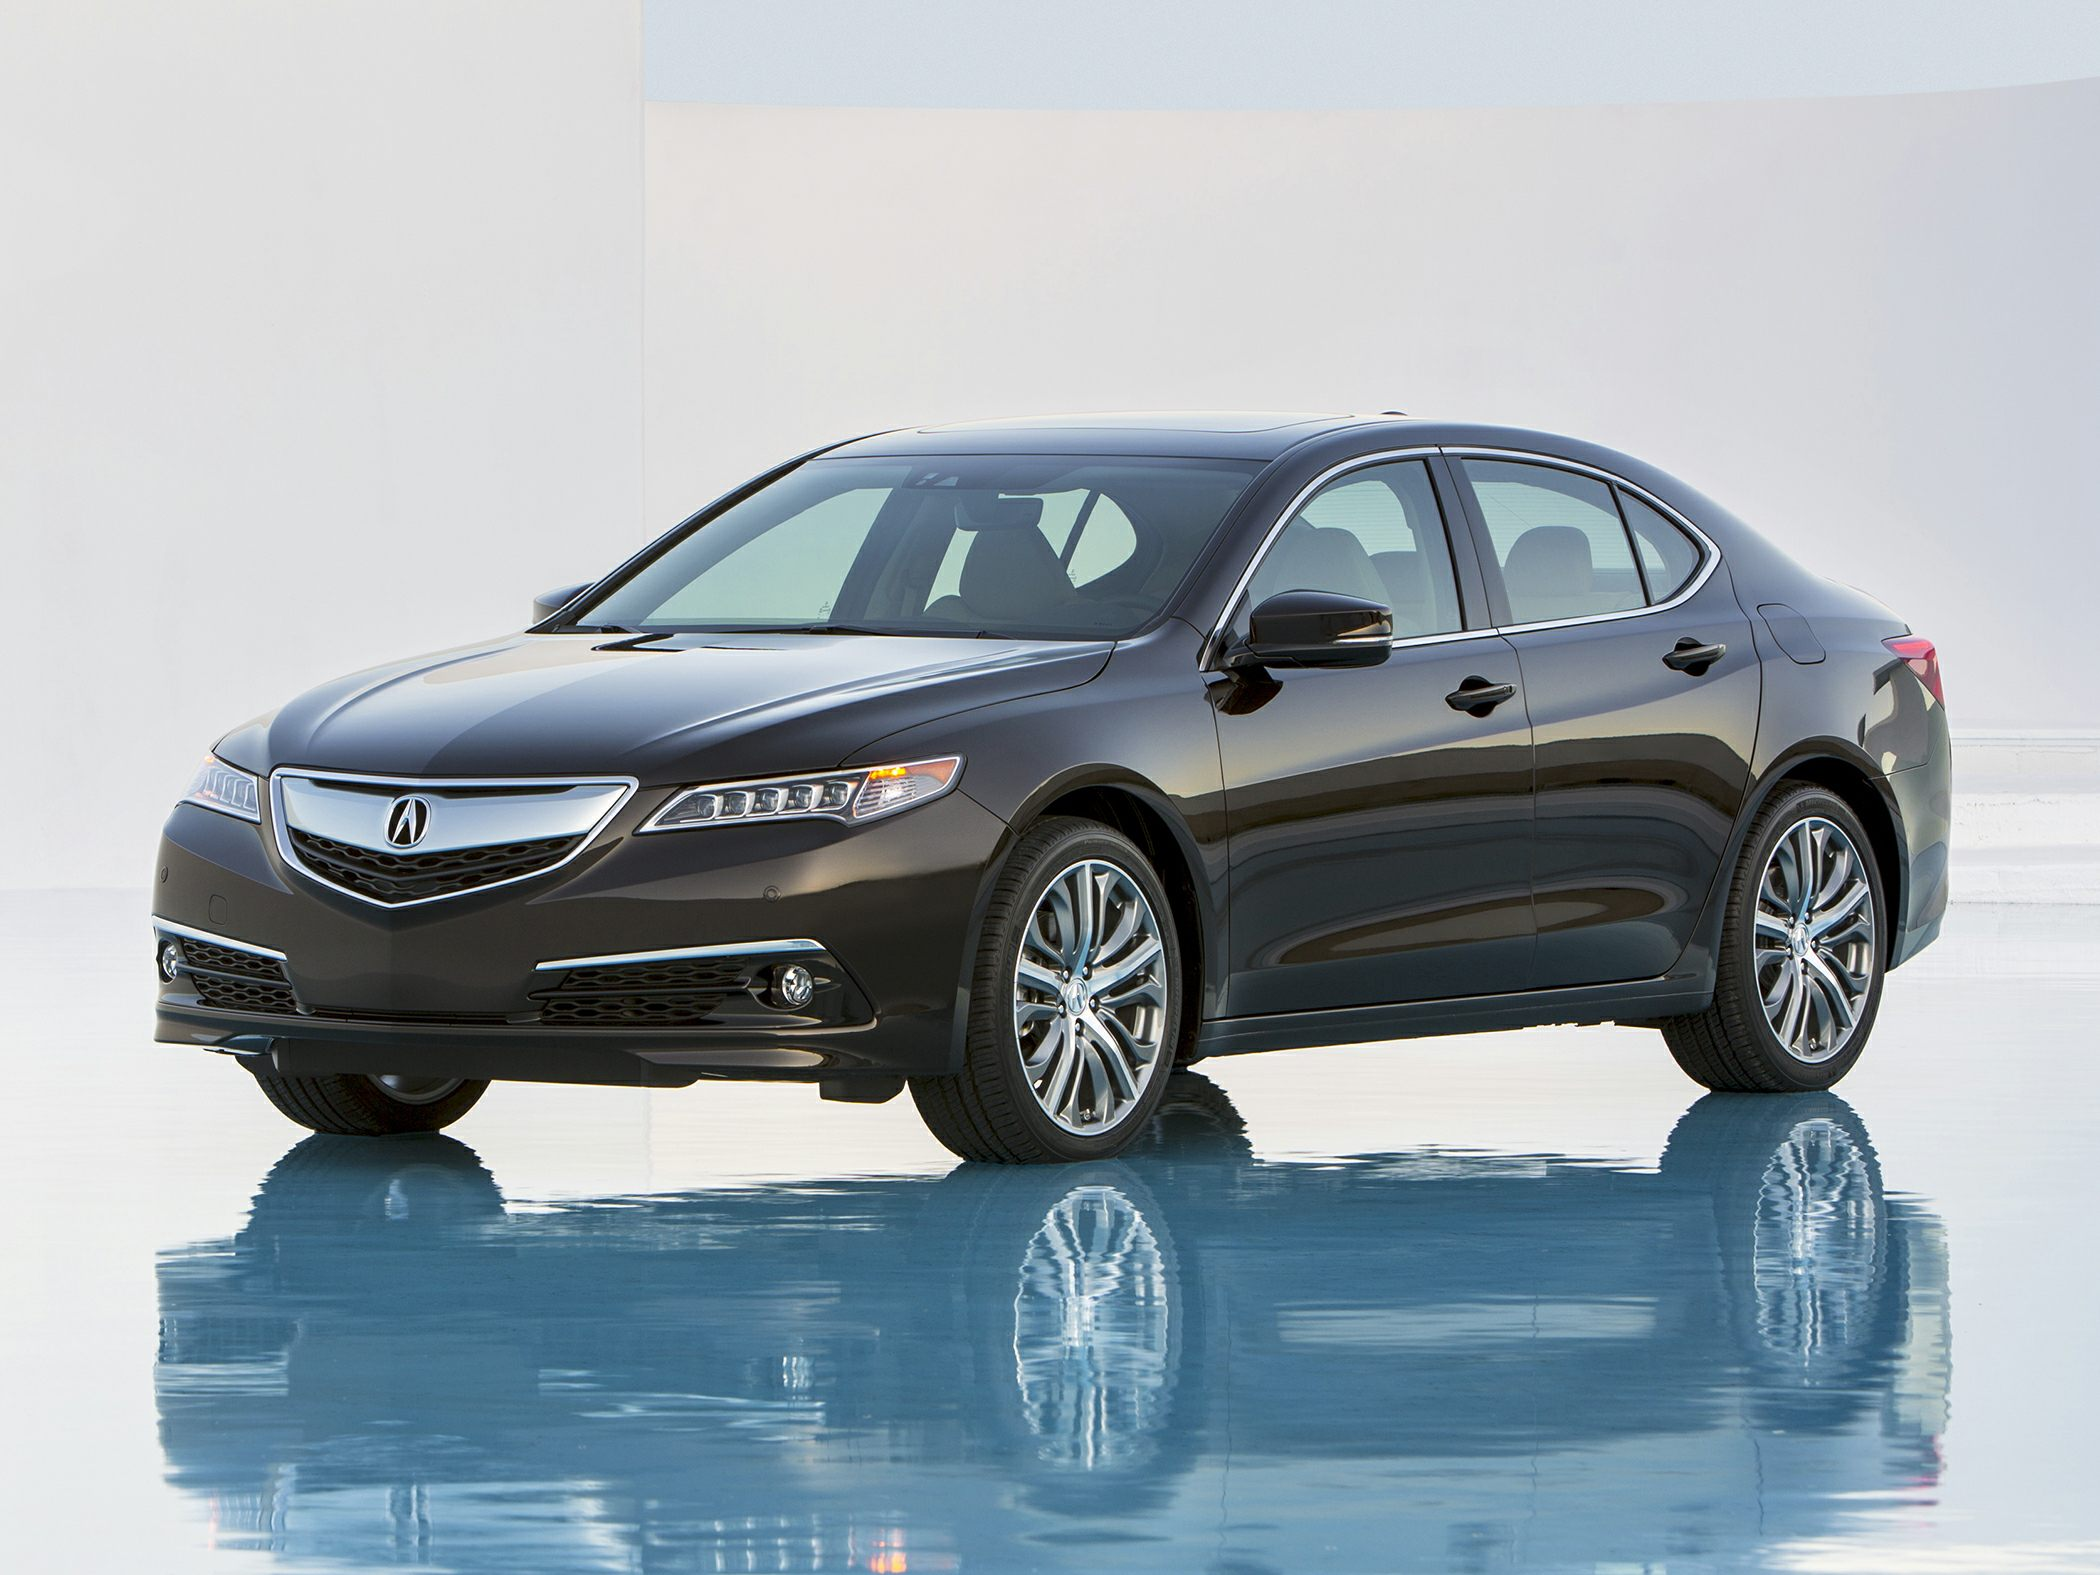 acura tlx lease roanoke htm specials in shop dealership duncan va and new deals finance